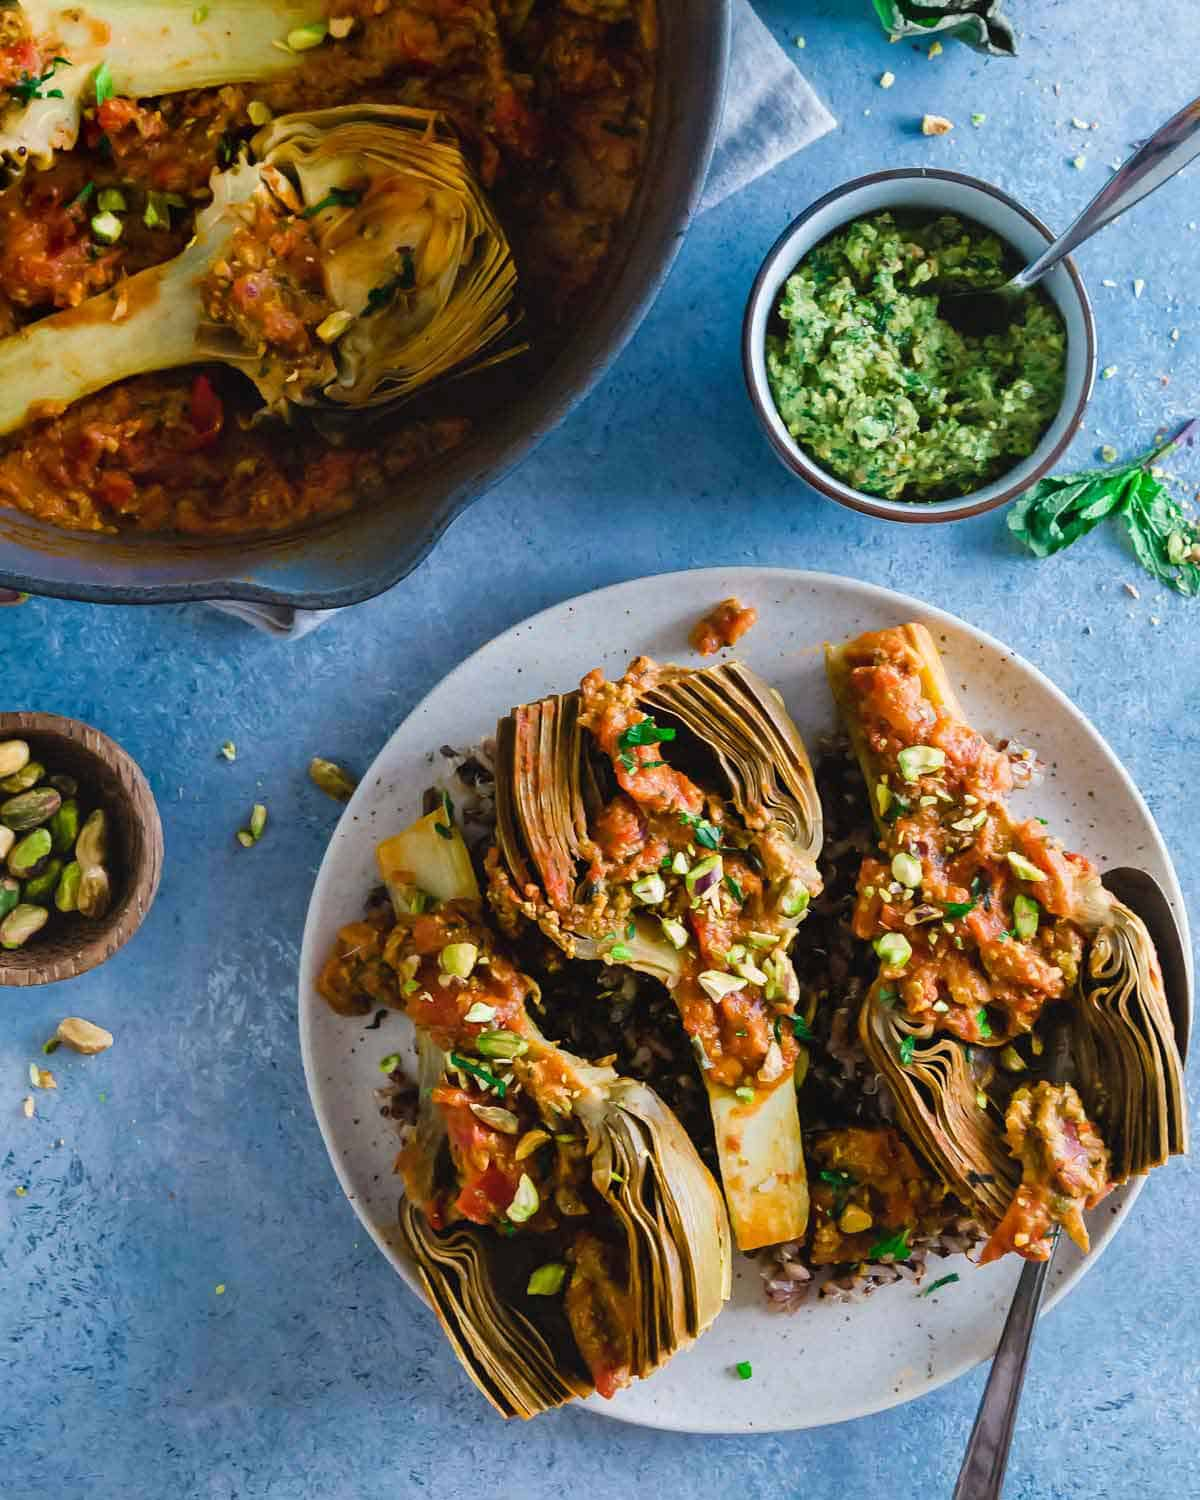 Braised artichokes cooked with tomatoes until fork tender and served with pistachio pesto are an absolutely delicious vegetarian side dish.